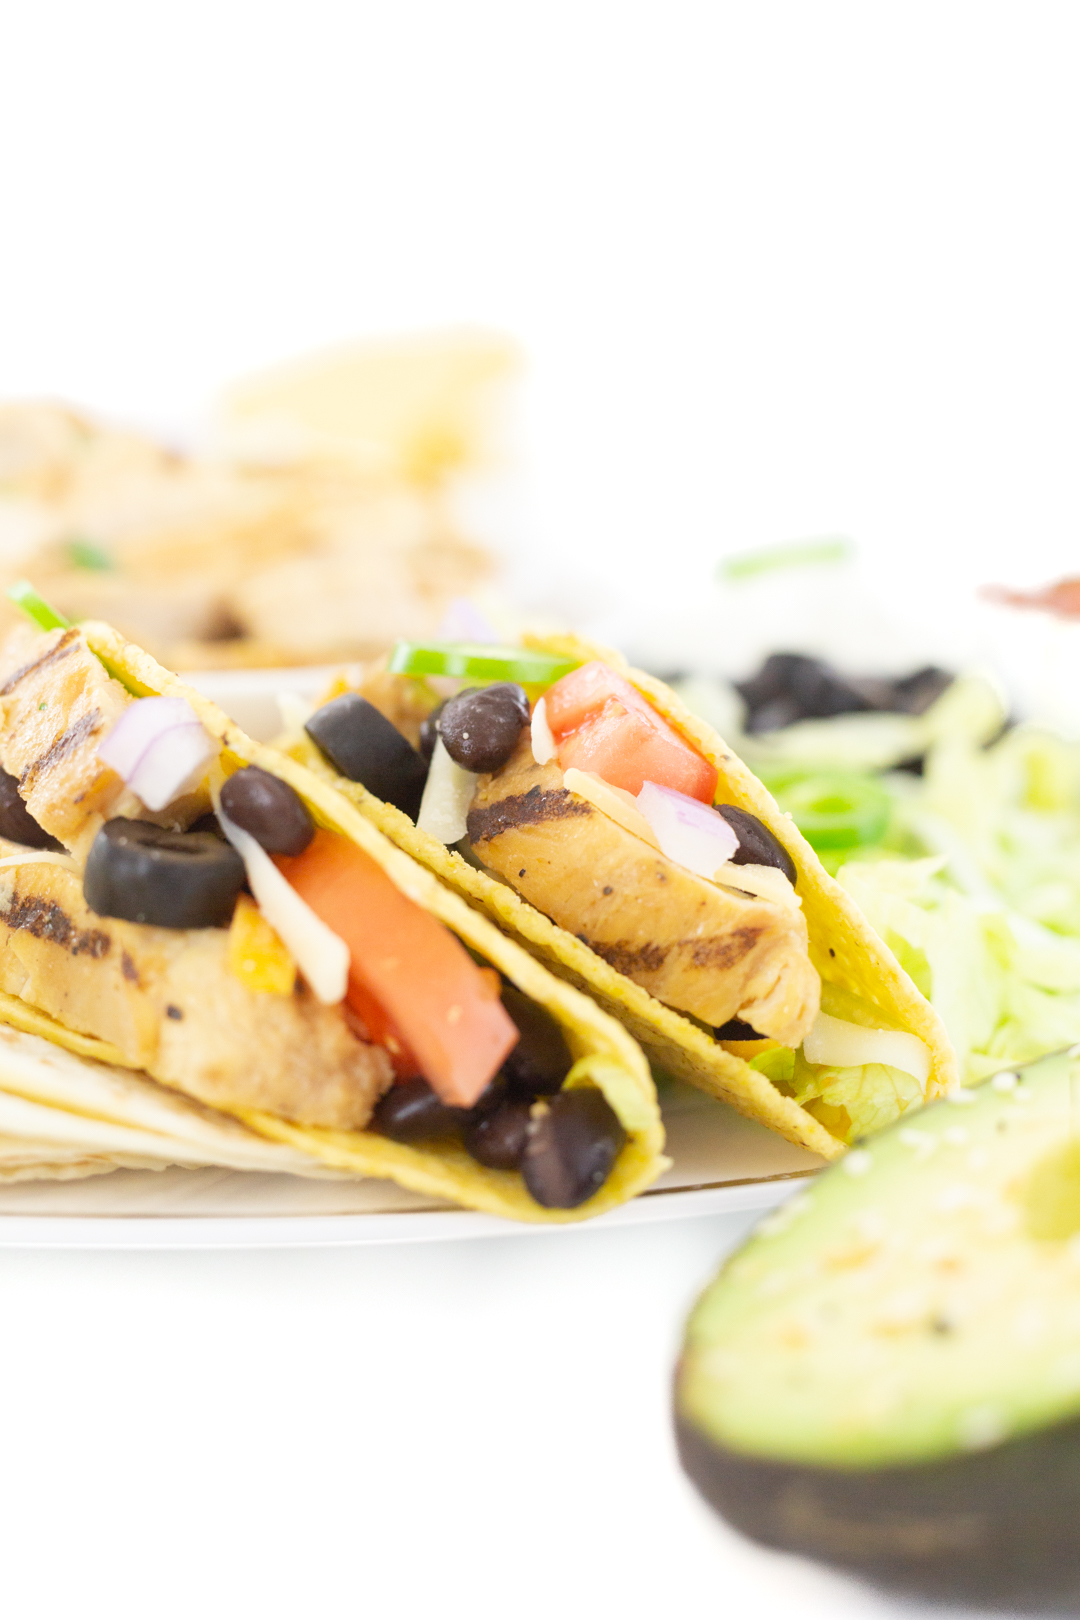 chicken tacos up close with tomatoes and black beans